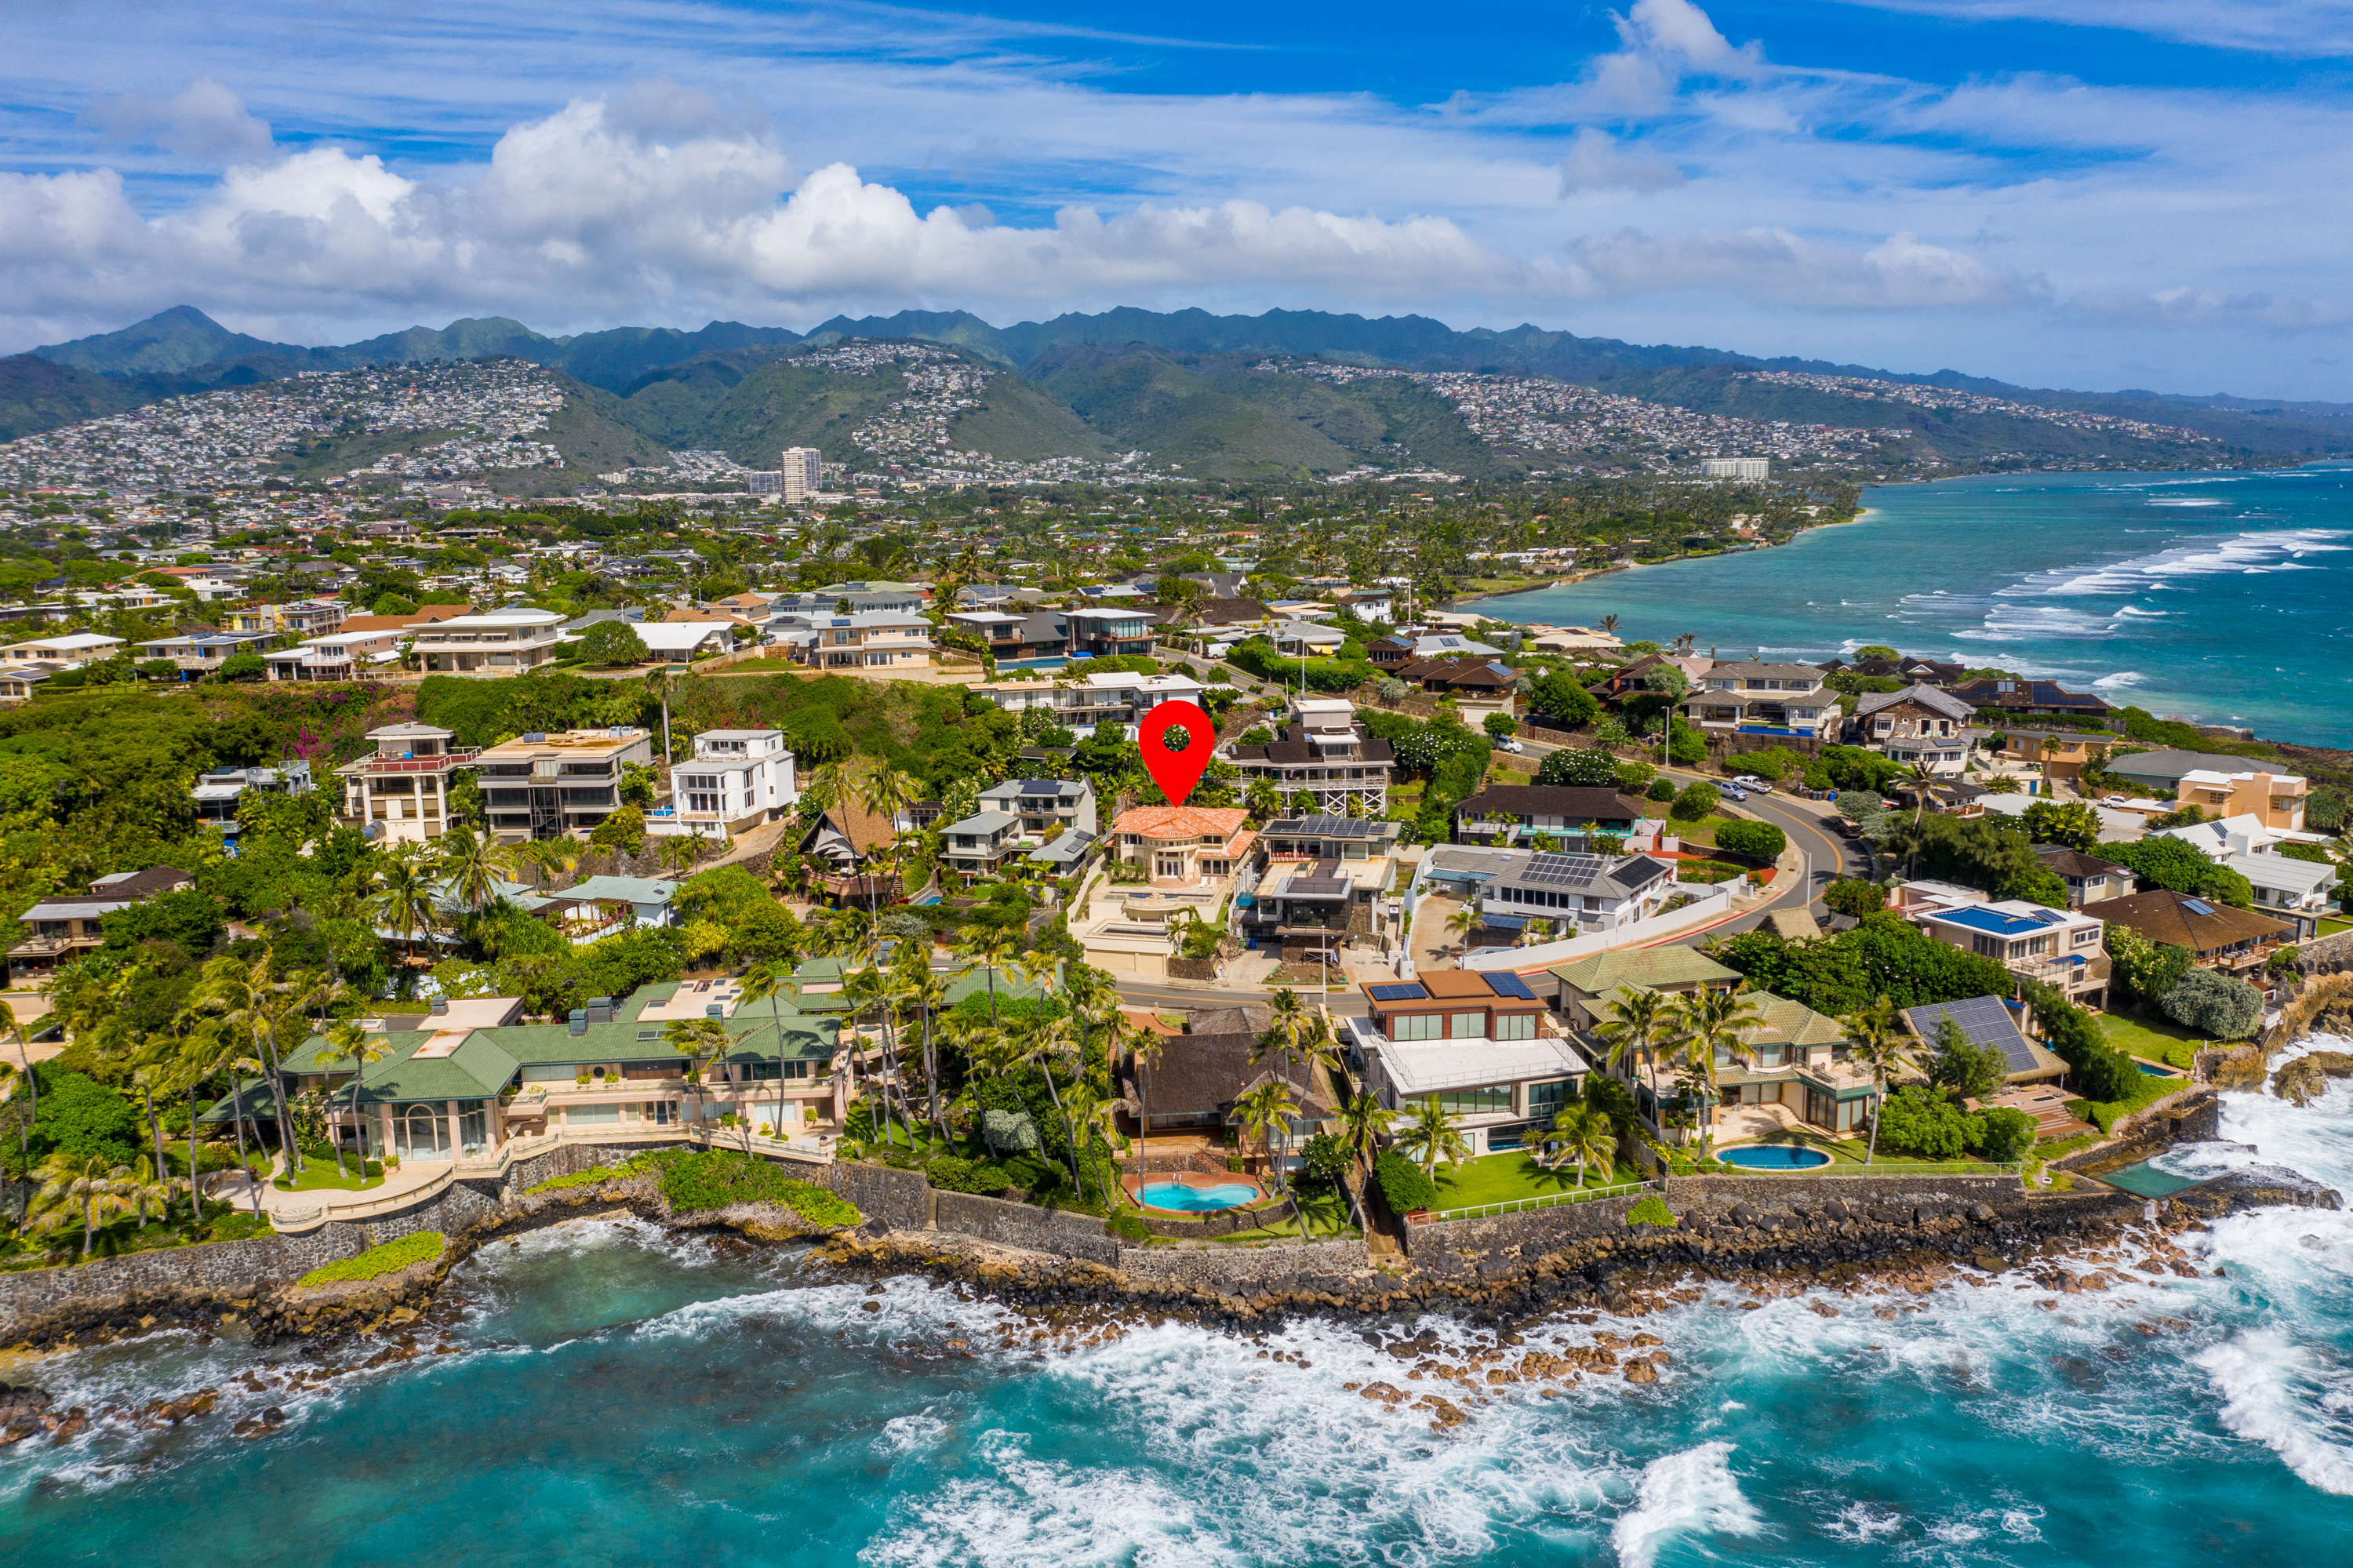 Aerial front view of Aerial and ocean view from 4323 Kaikoo Place Honolulu, Hawaii 96816